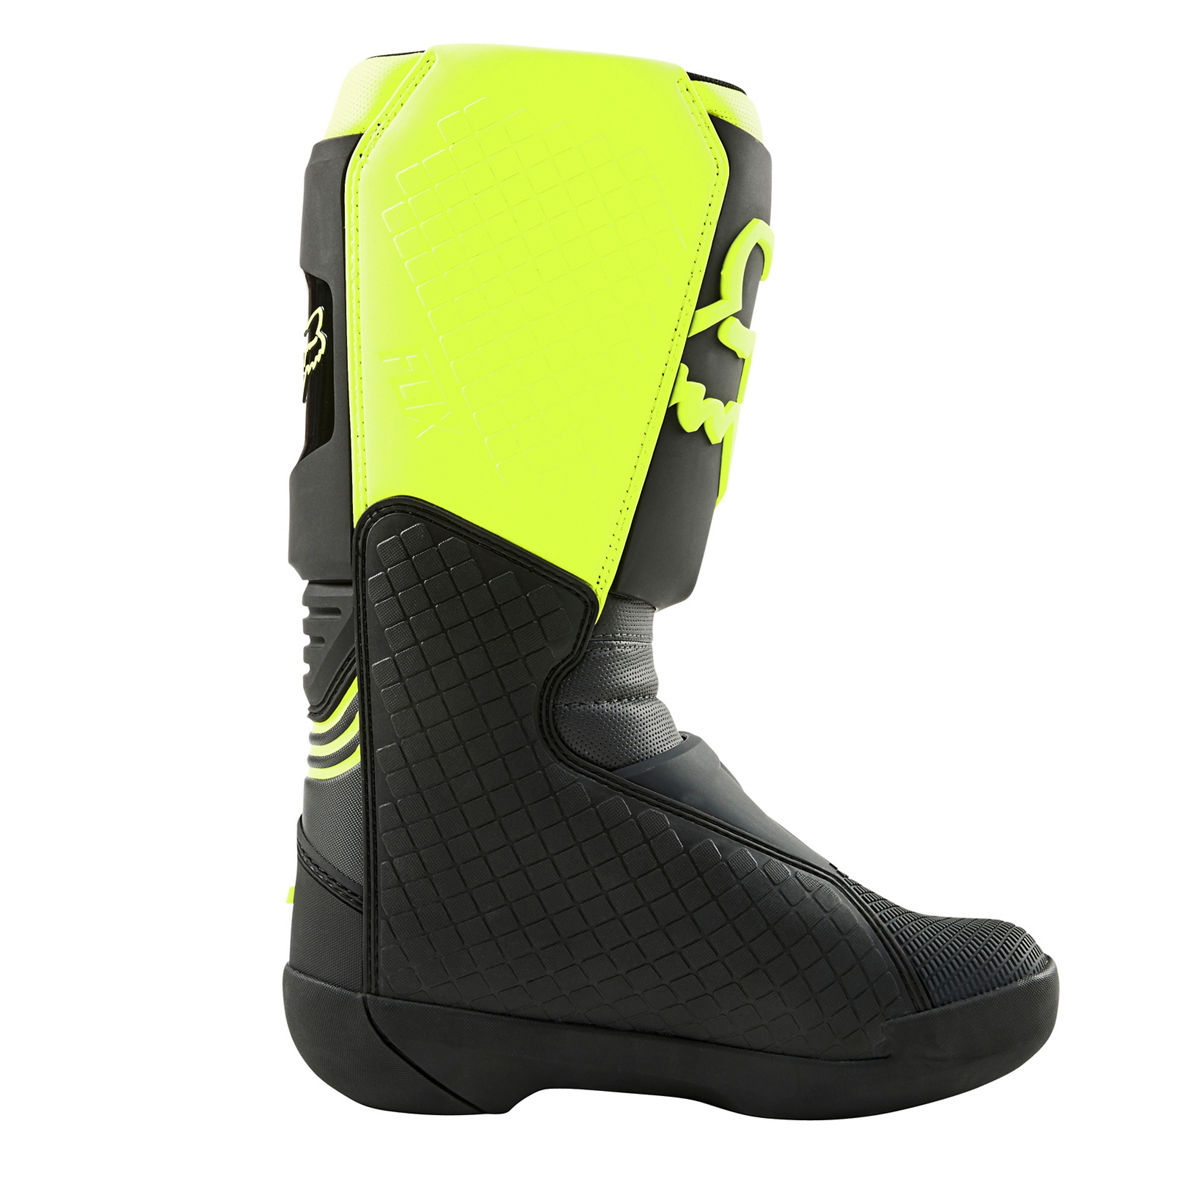 25839-019 2021 Fox Racing Comp Boots Black Yellow Motocross Enduro Laarzen Stiefel Bottes